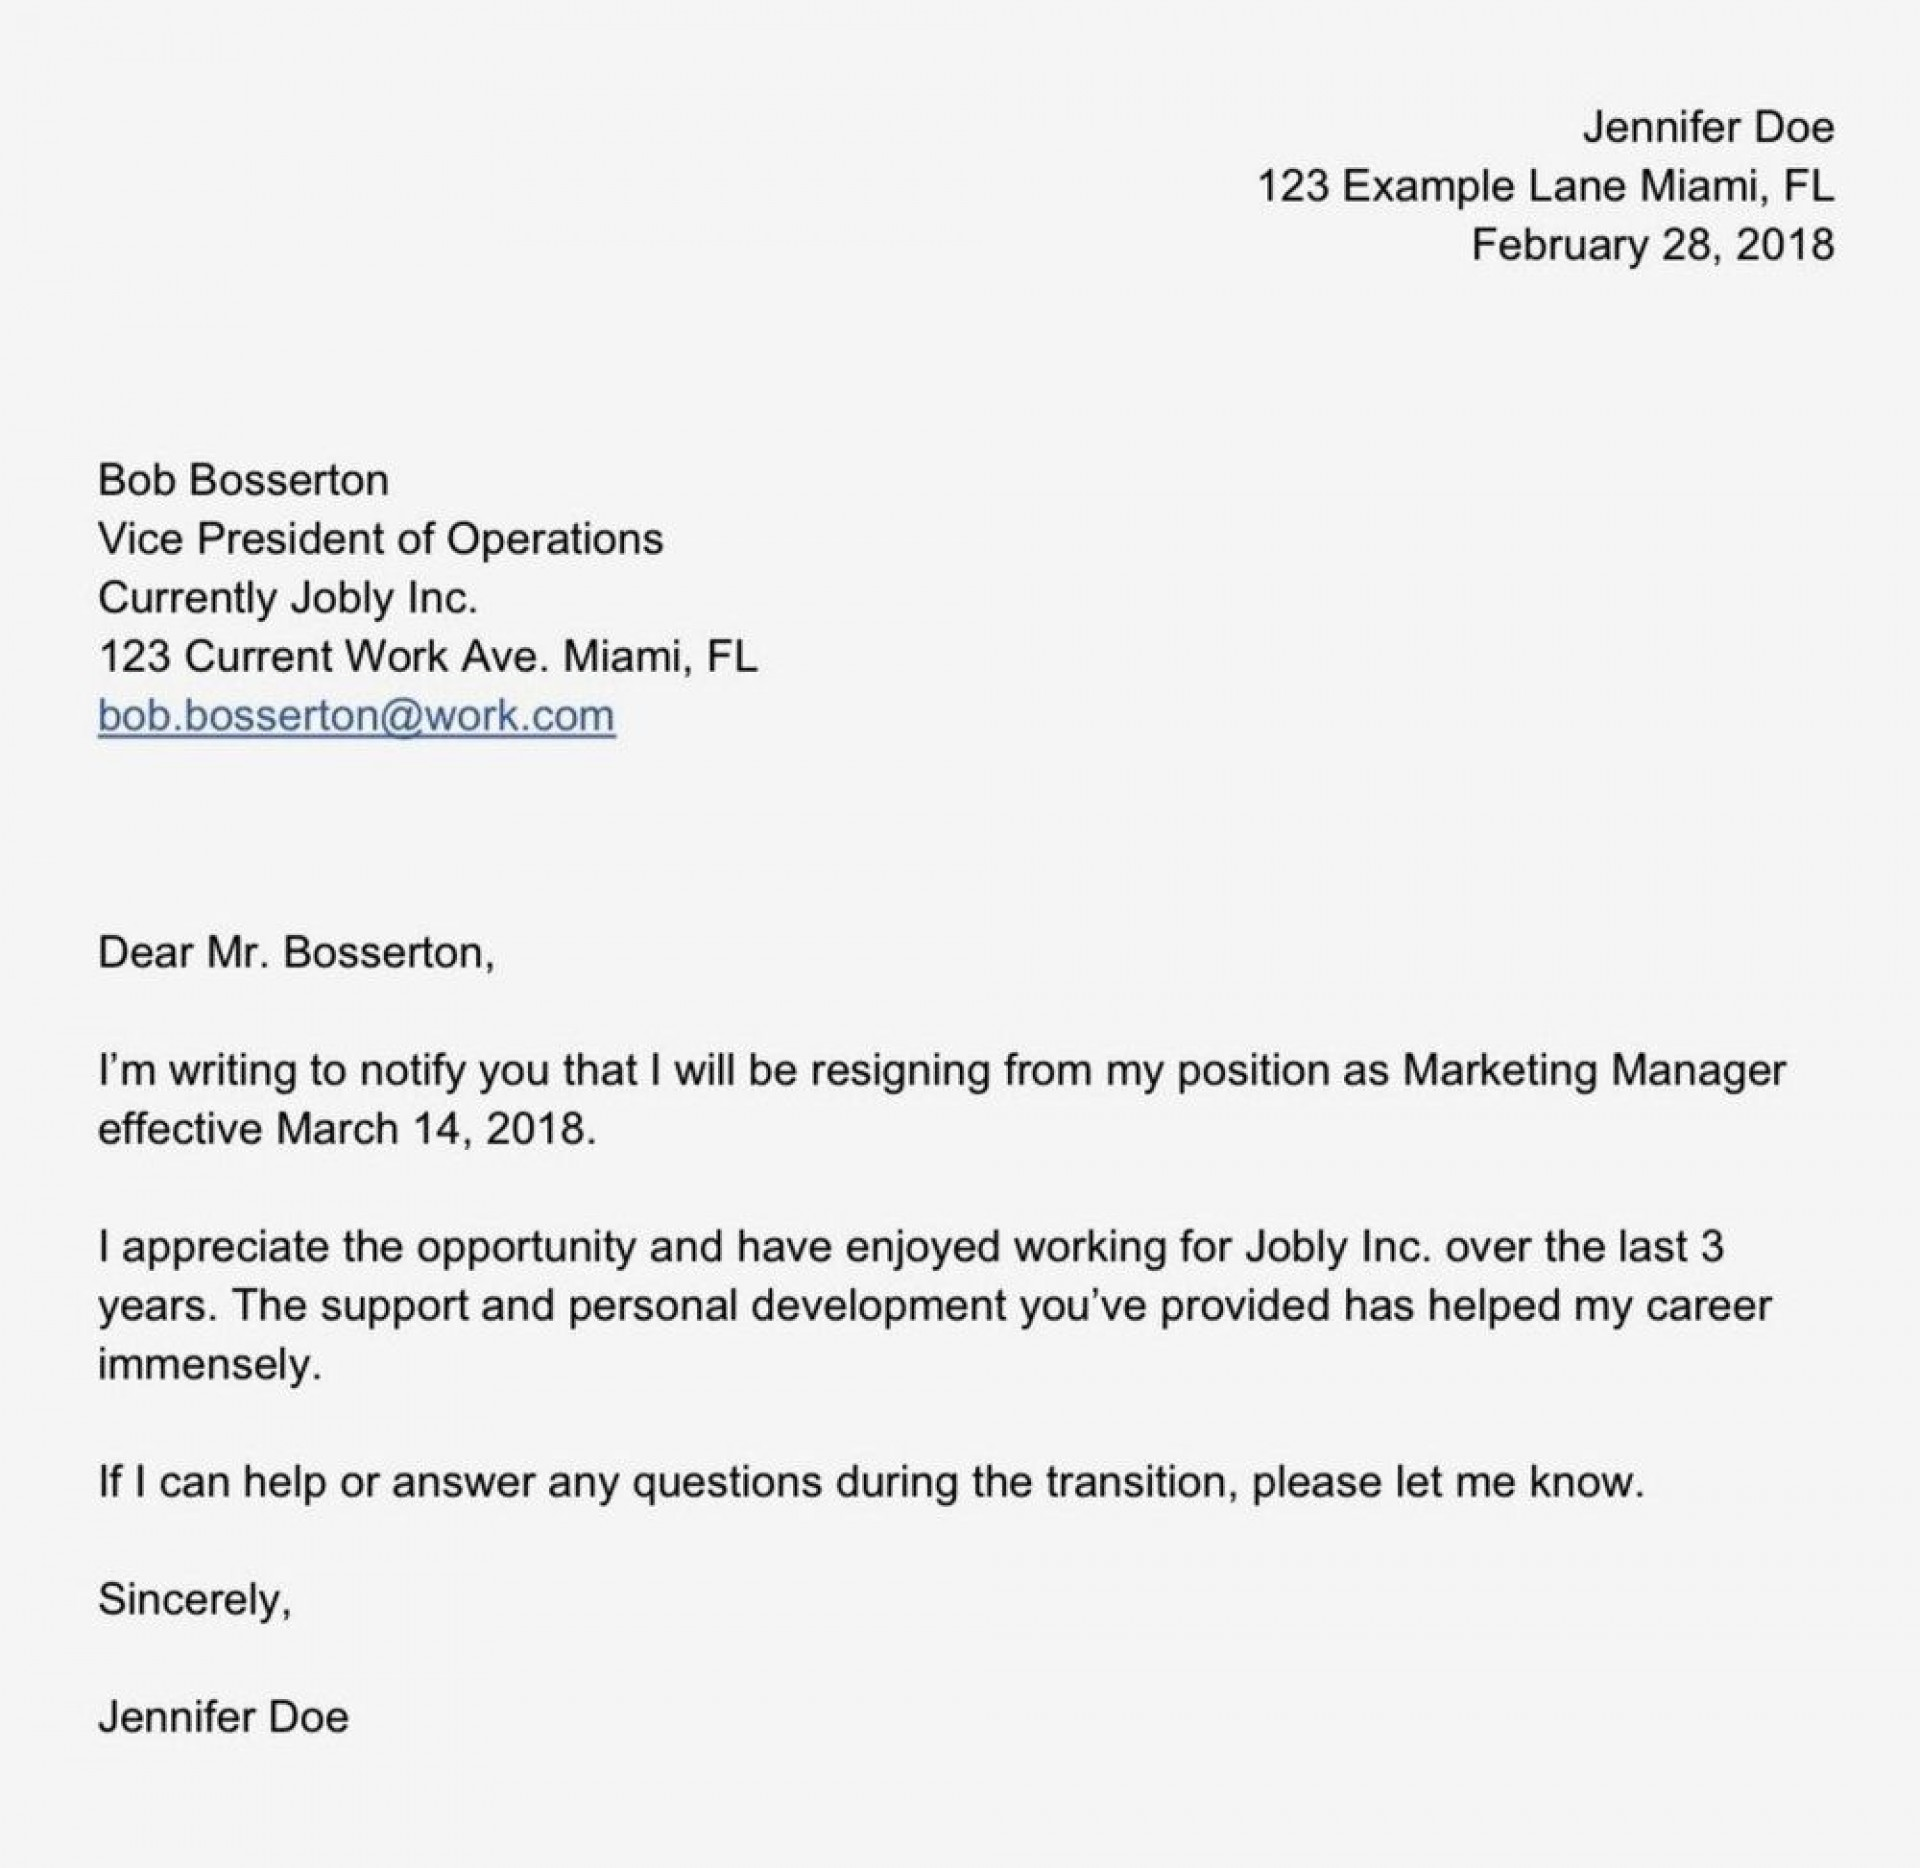 007 Stupendou Sample Resignation Letter Template Email Highest Quality 1920